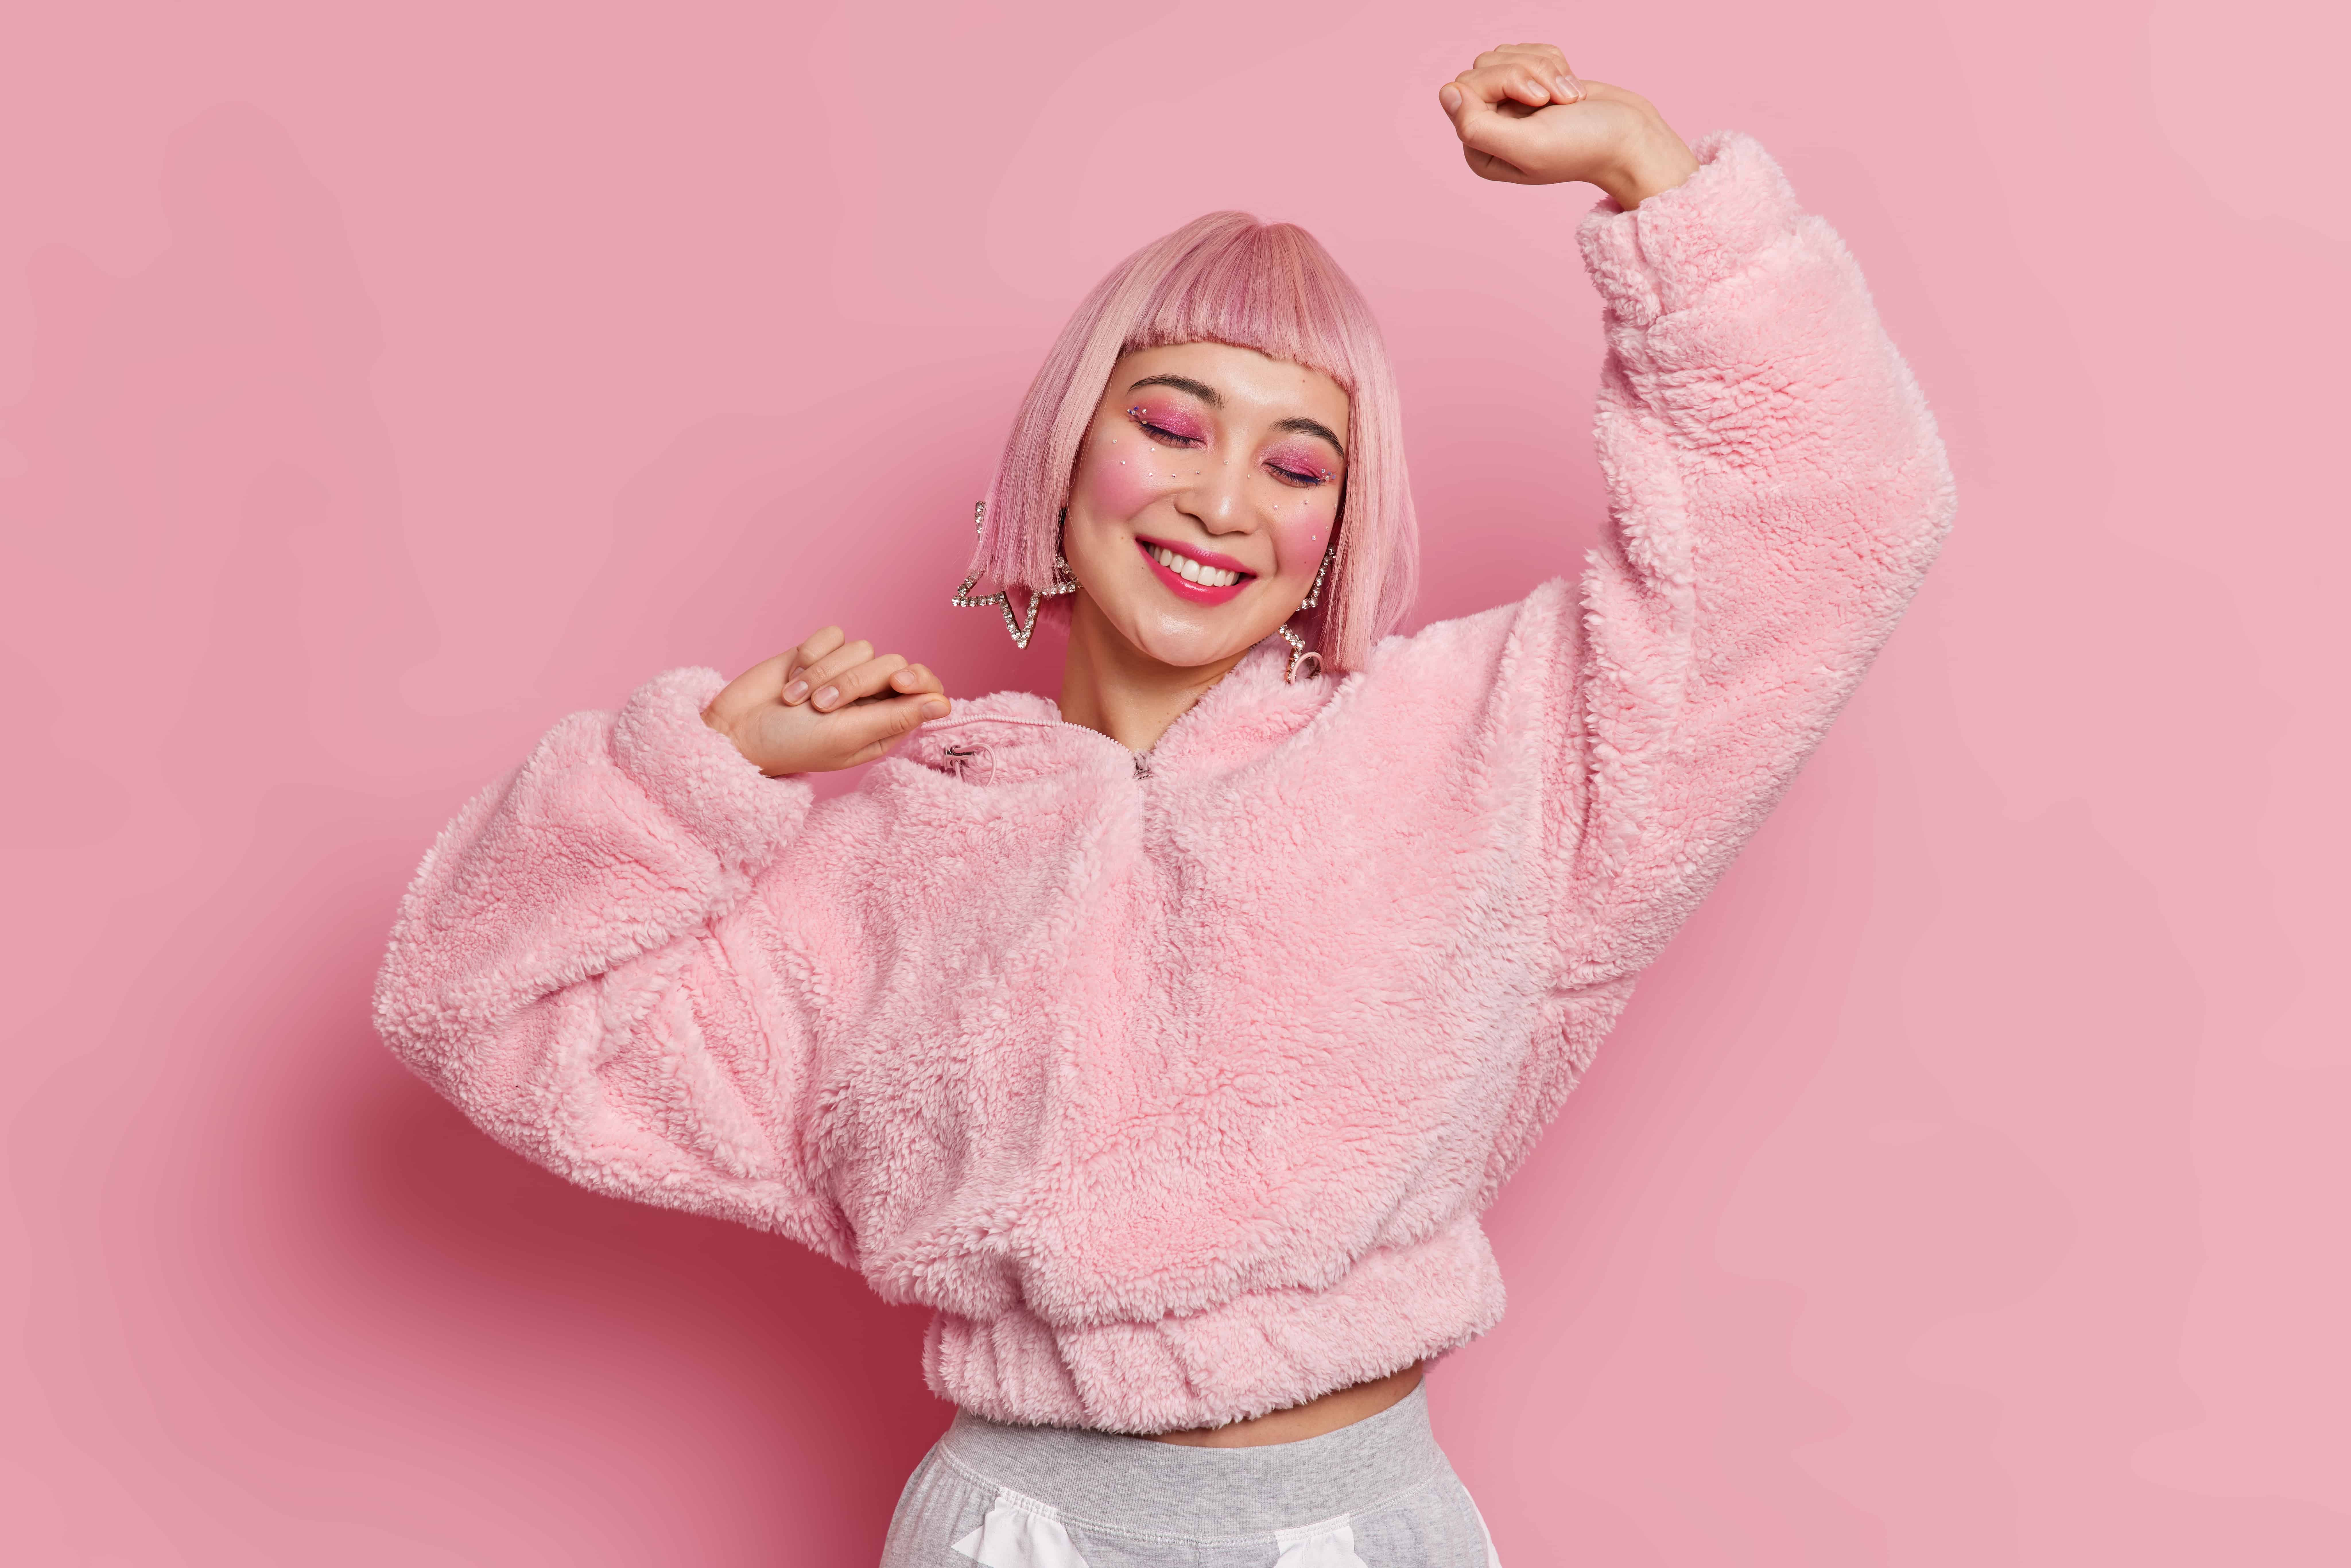 Studio shot of cheerful young pretty Asian woman wears pink wig bright makeup raises arms feels upbeat dances carefree celebrates something dressed in fur coat isolated over rosy background.